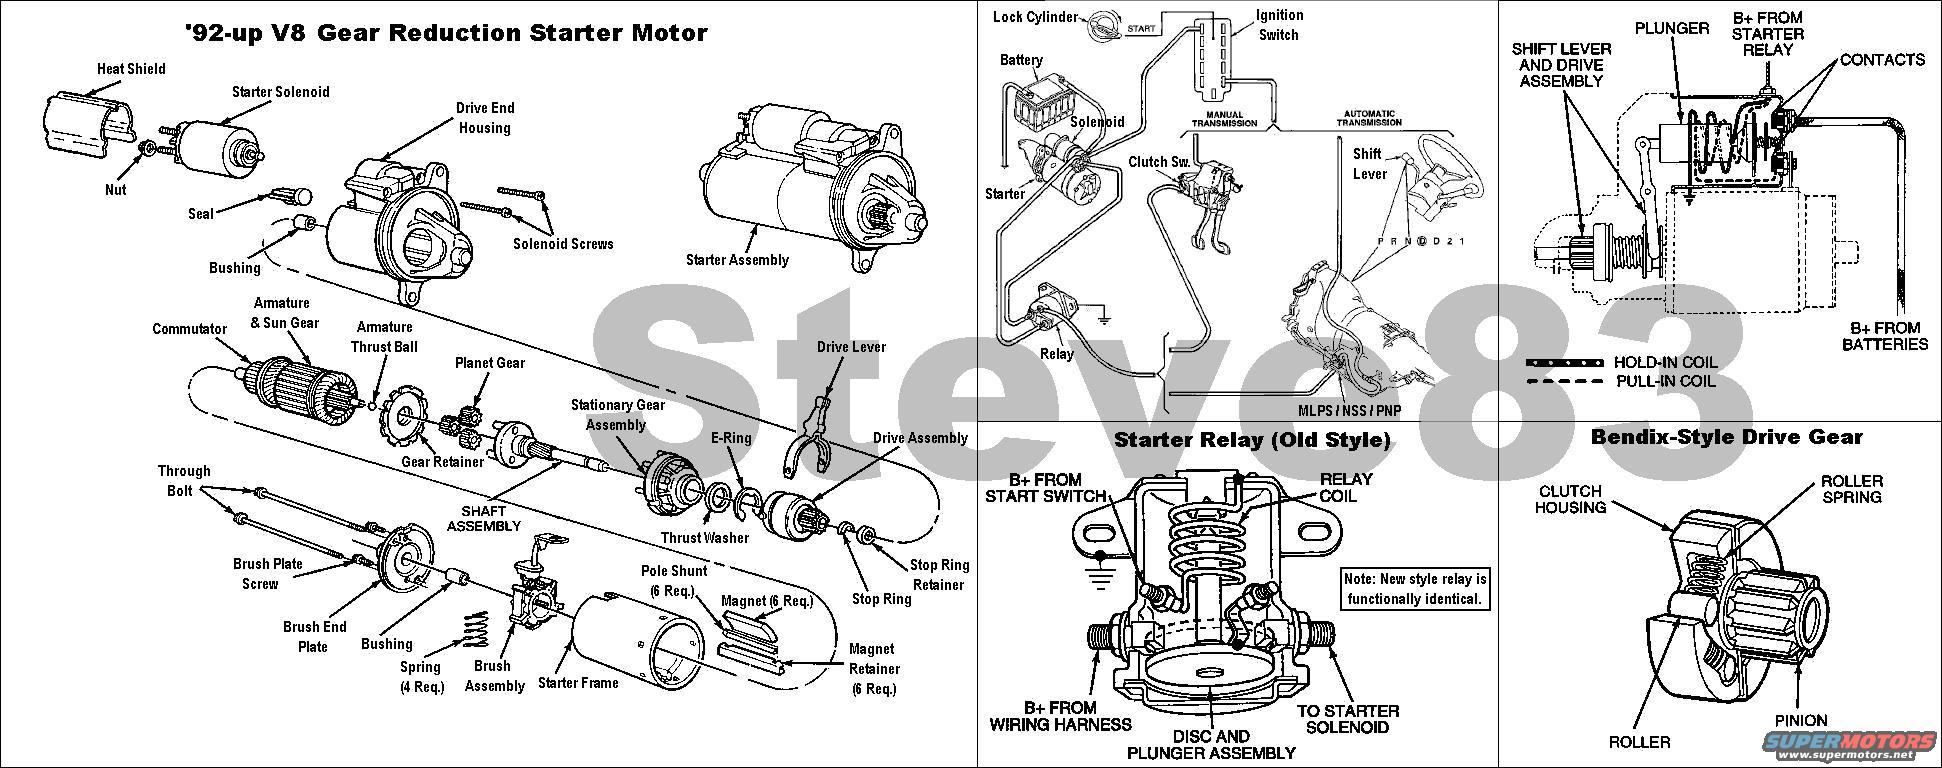 Starter Solenoid Ignition